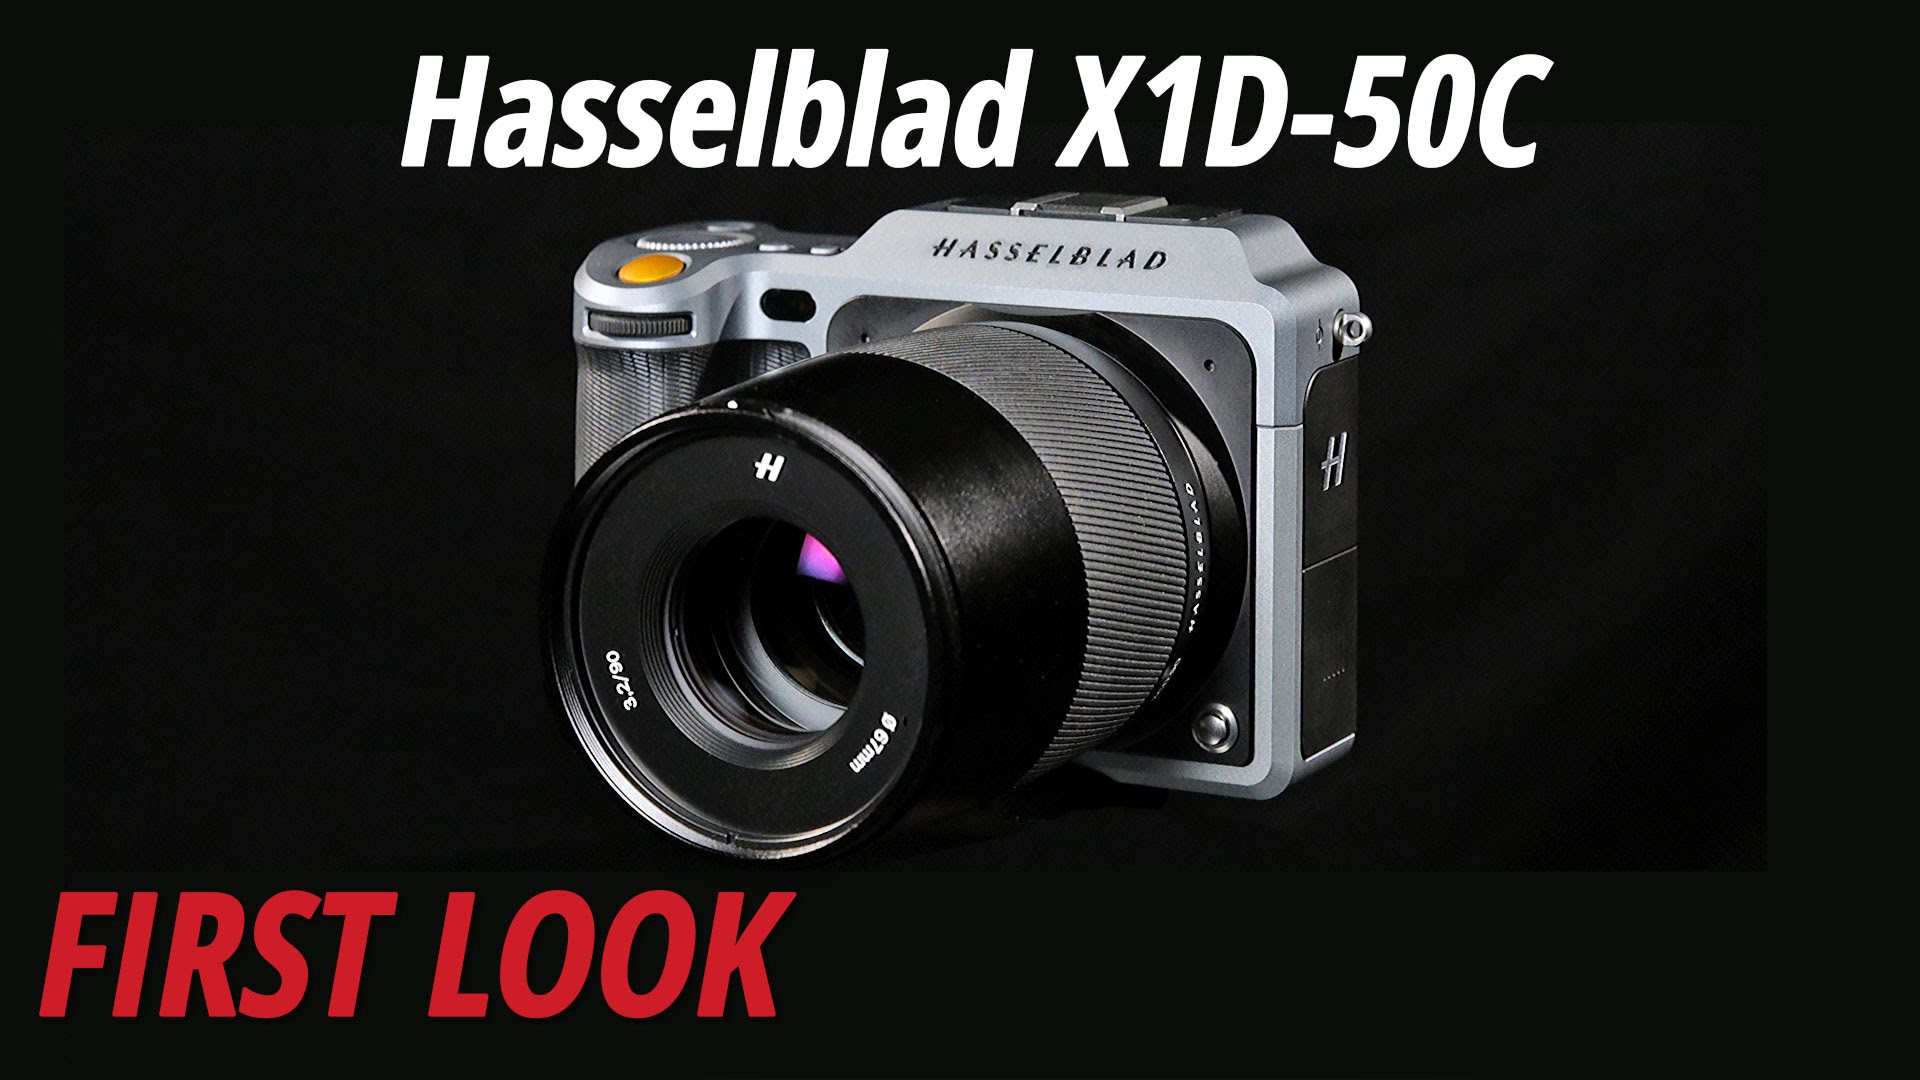 First Look at the Hasselblad X1D-50c Mirrorless Medium Format Camera